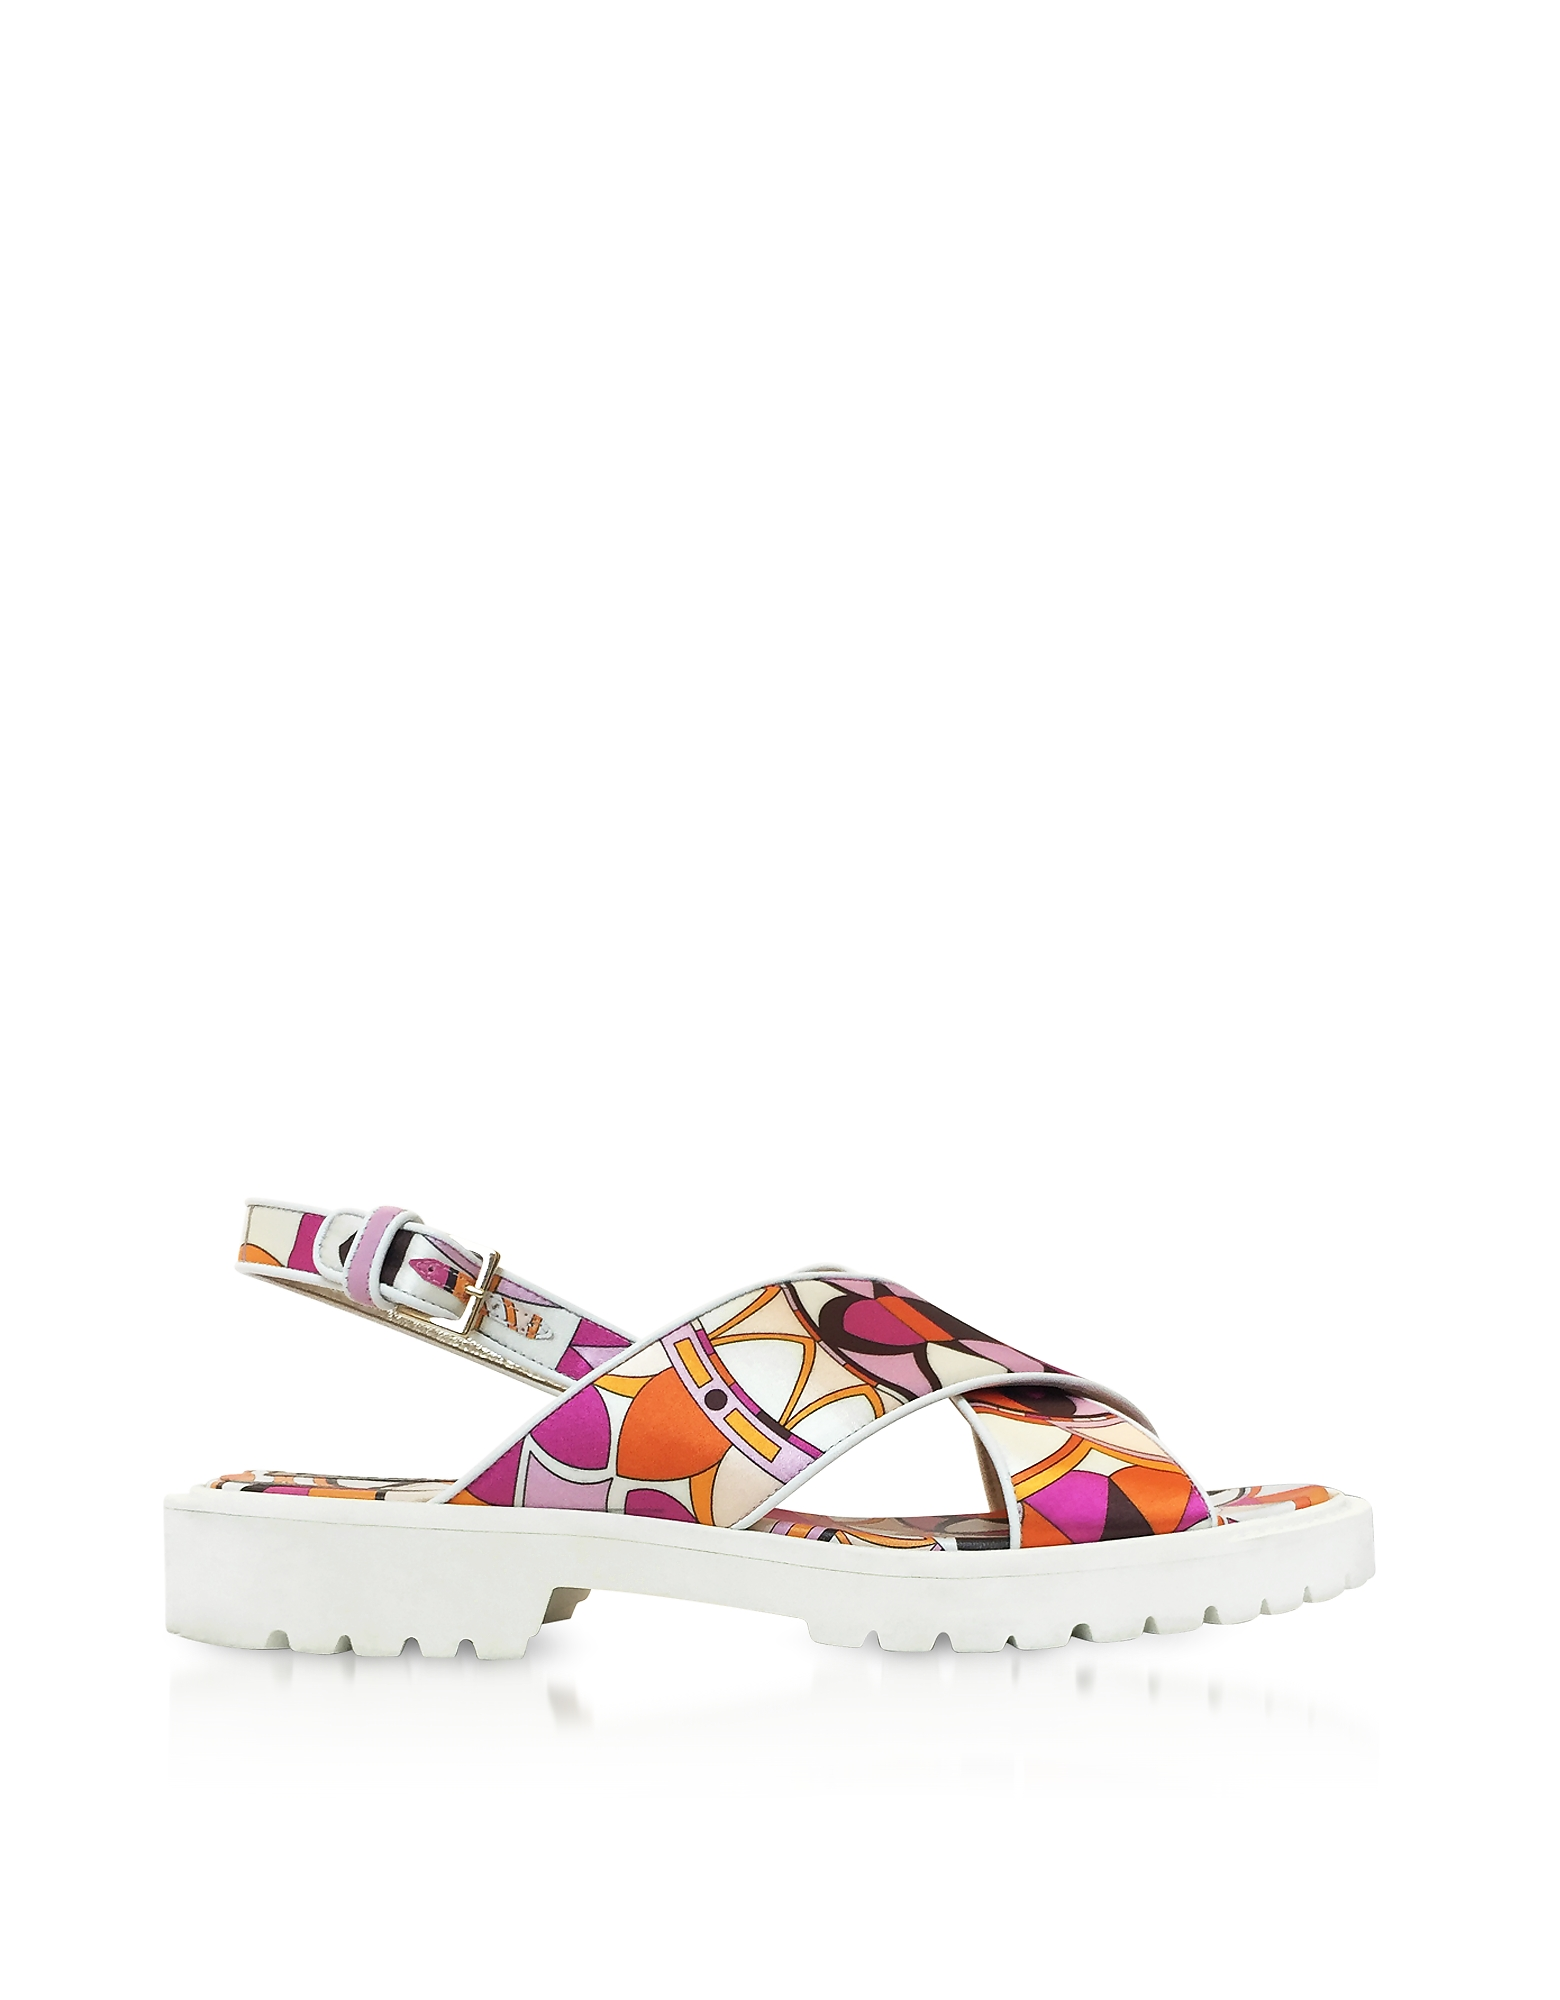 Emilio Pucci Shoes, Arenal Print Twill Silk Sandals